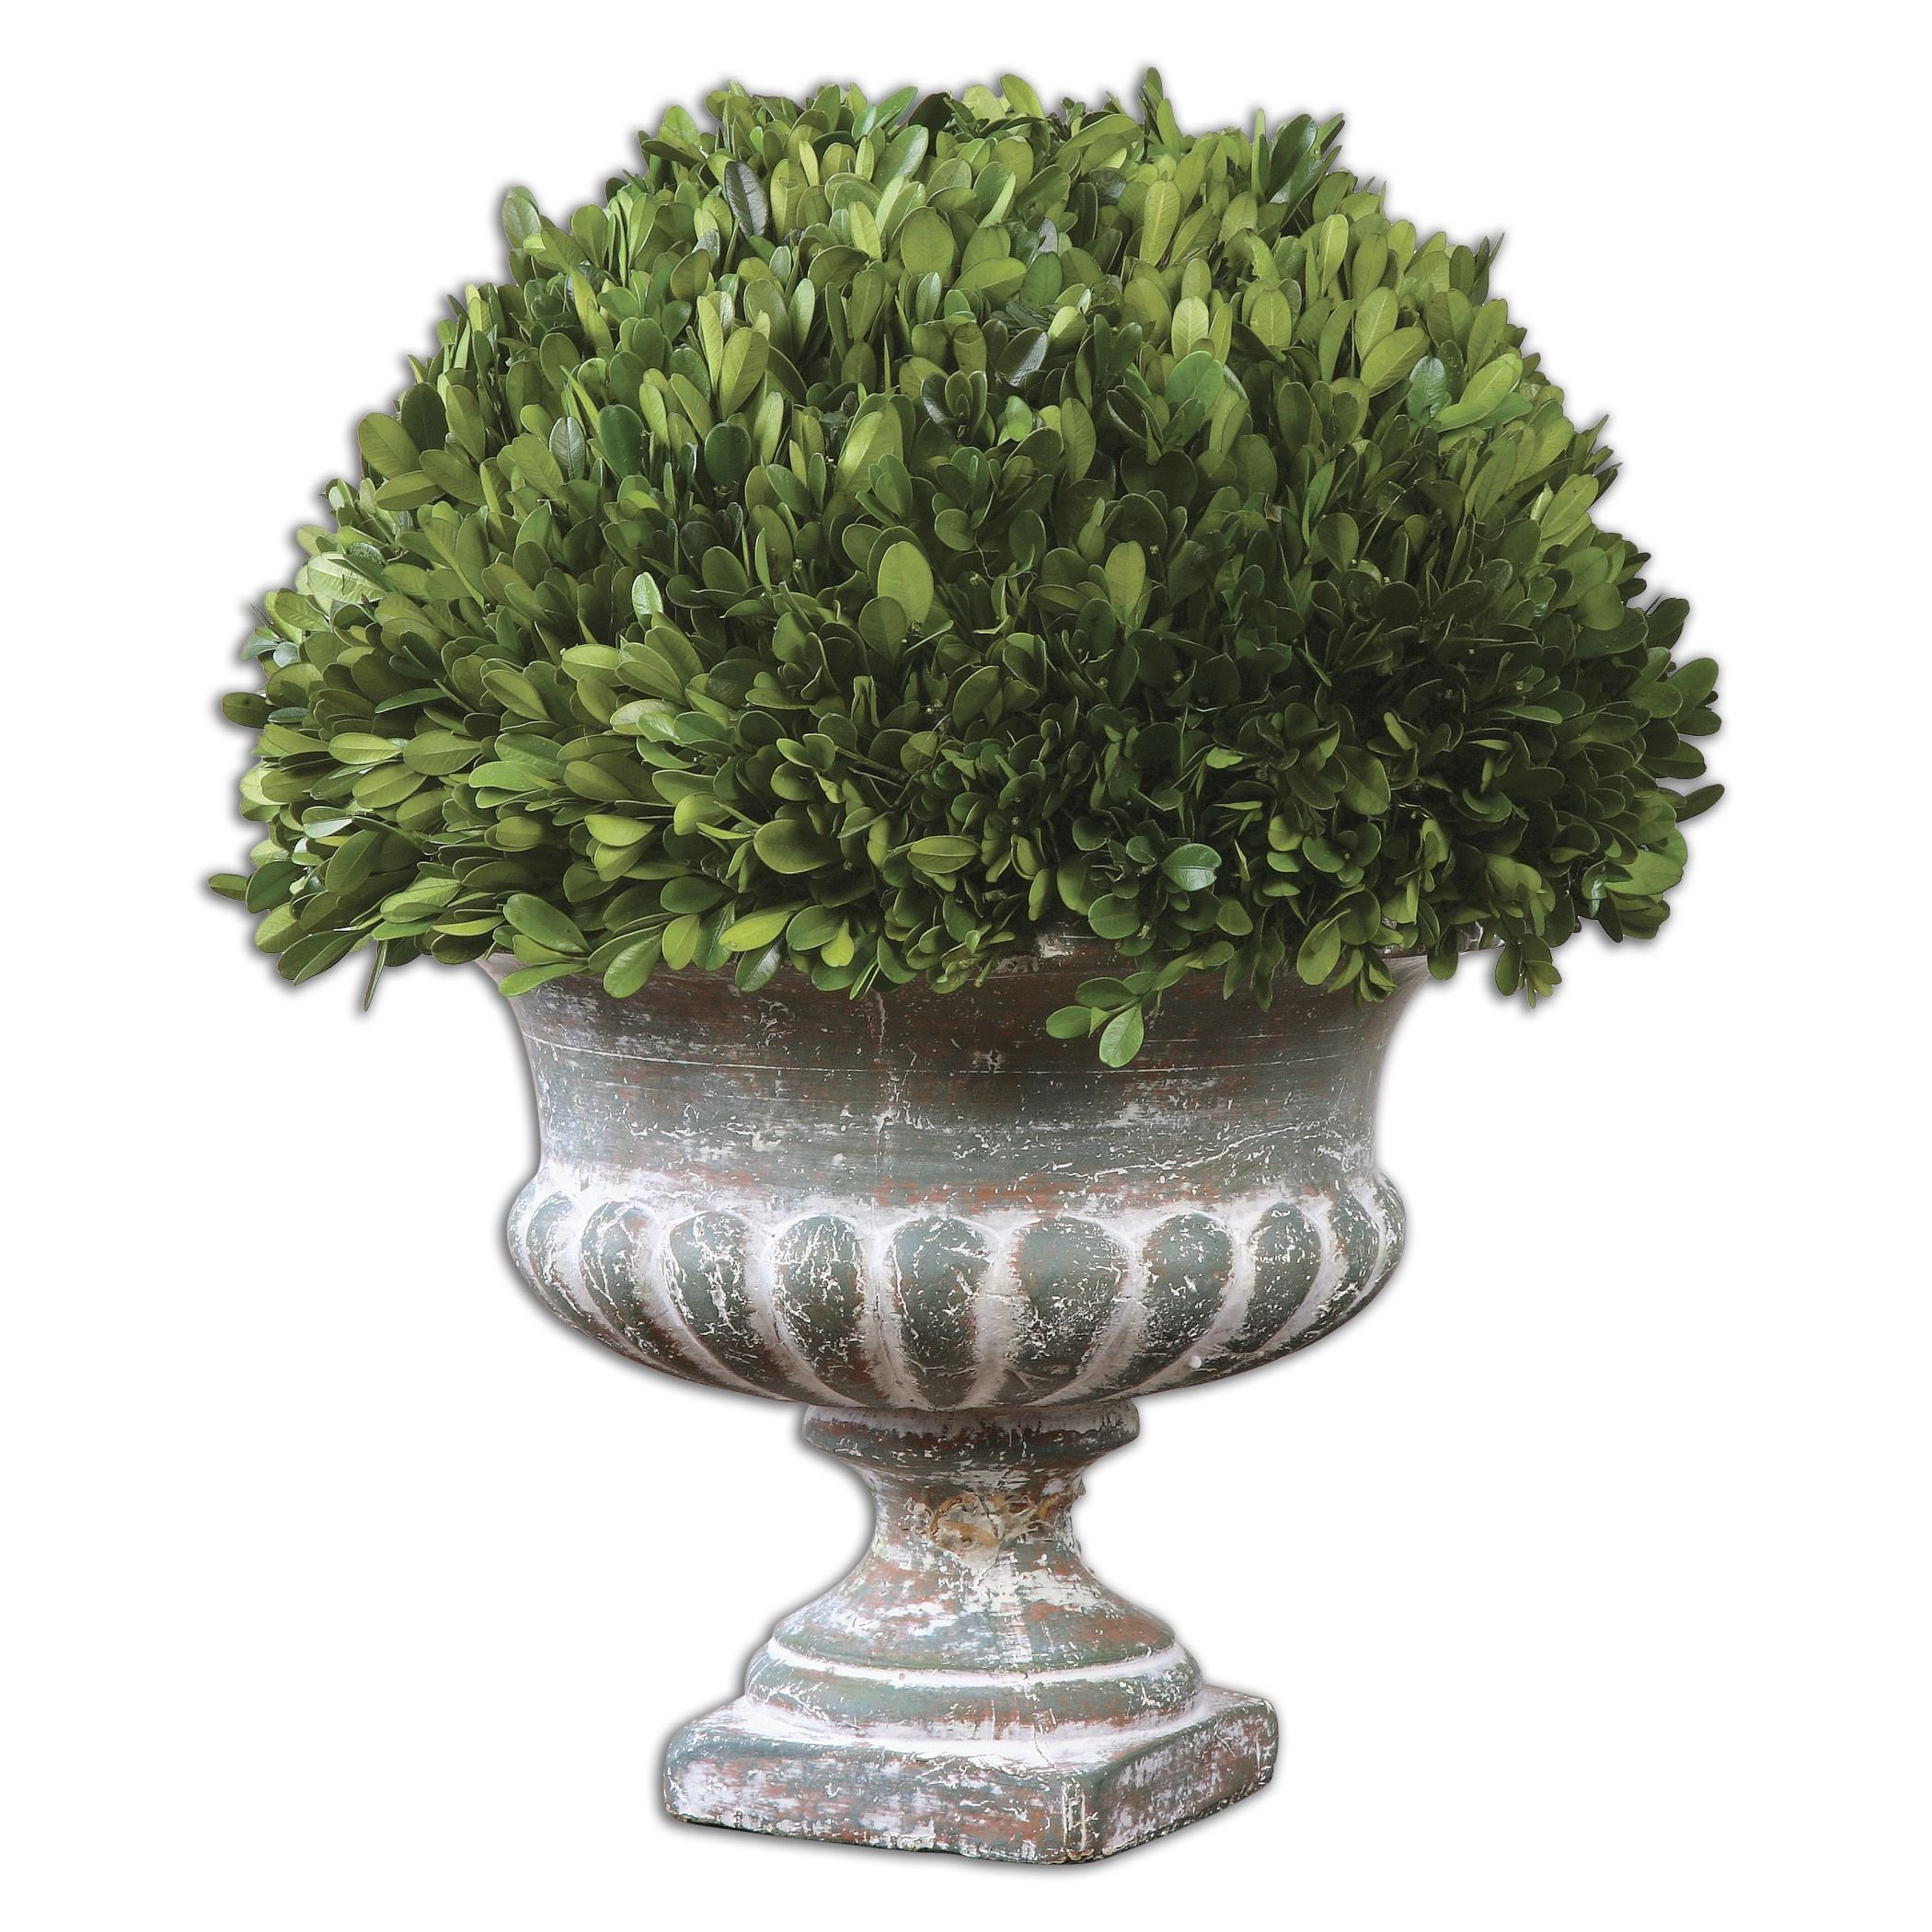 Uttermost Preserved Boxwood Garden Urn with Natural Foliage That Is Picked From Real Boxwood Plants by UTMOST MFG (Image #1)